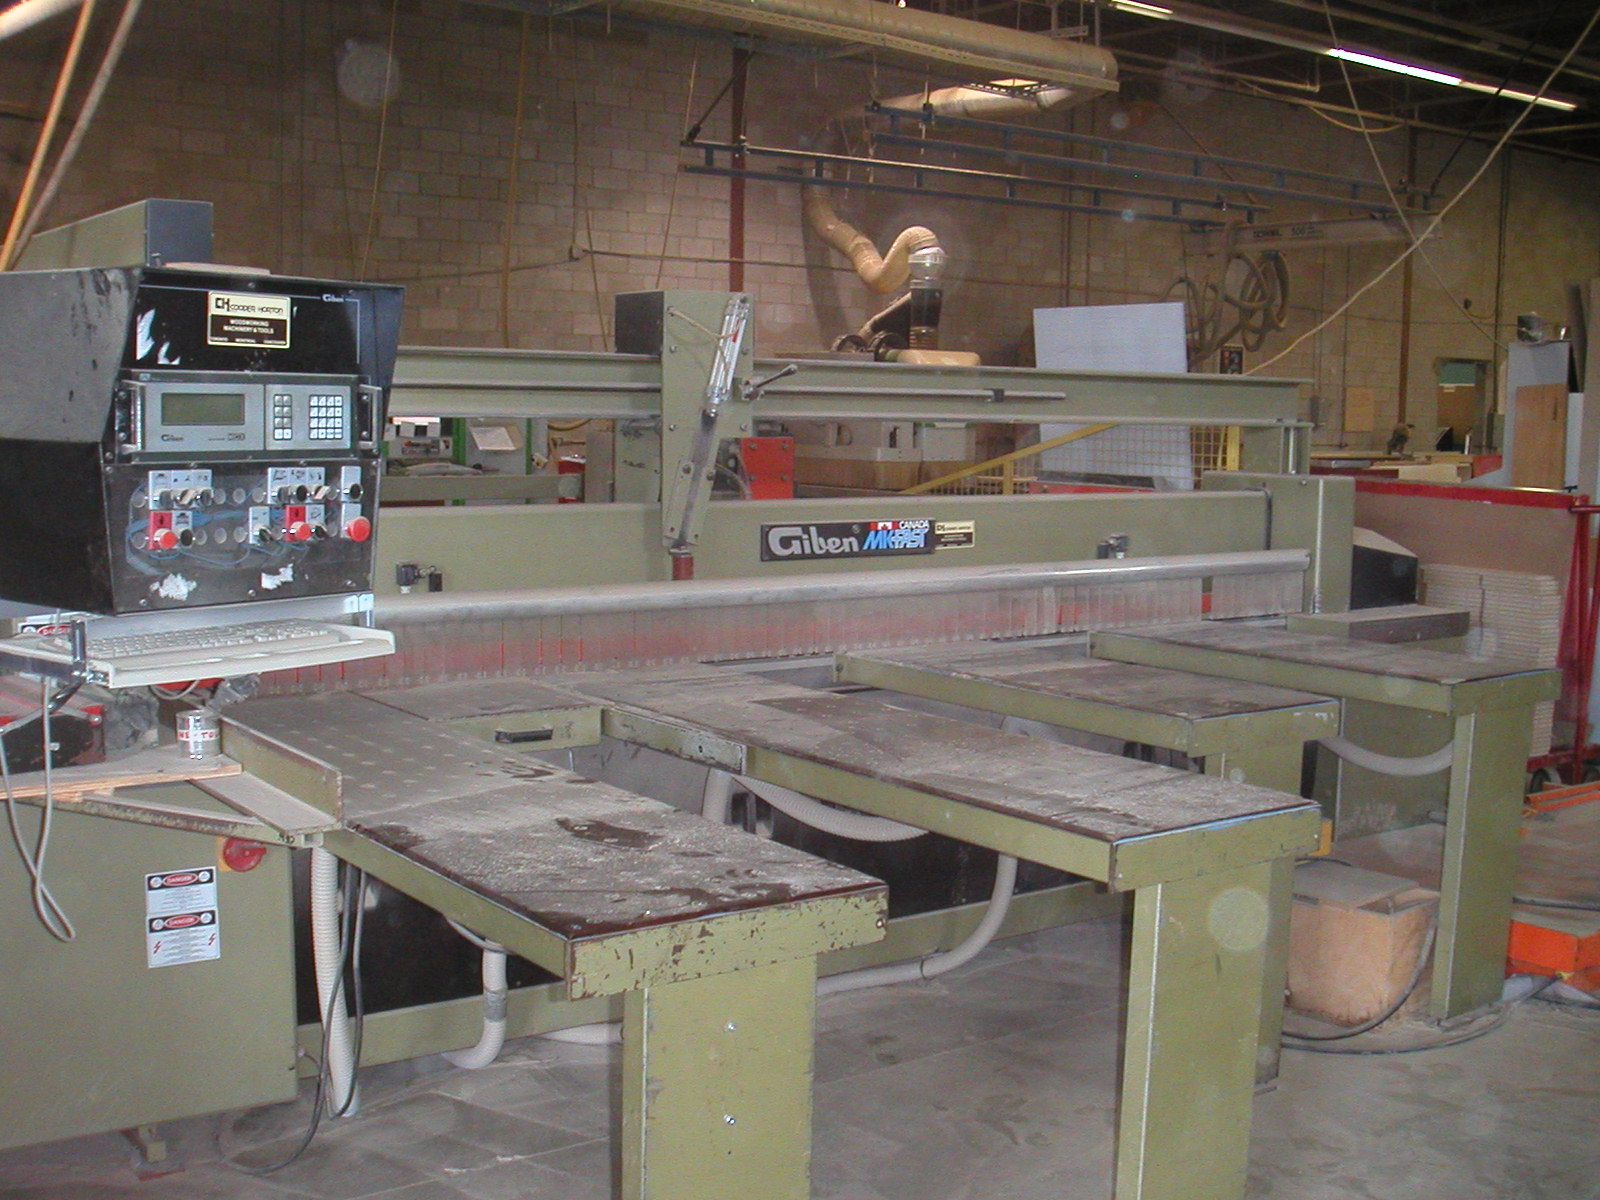 Giben MK-Fast Front Load Panel Saw, 1994